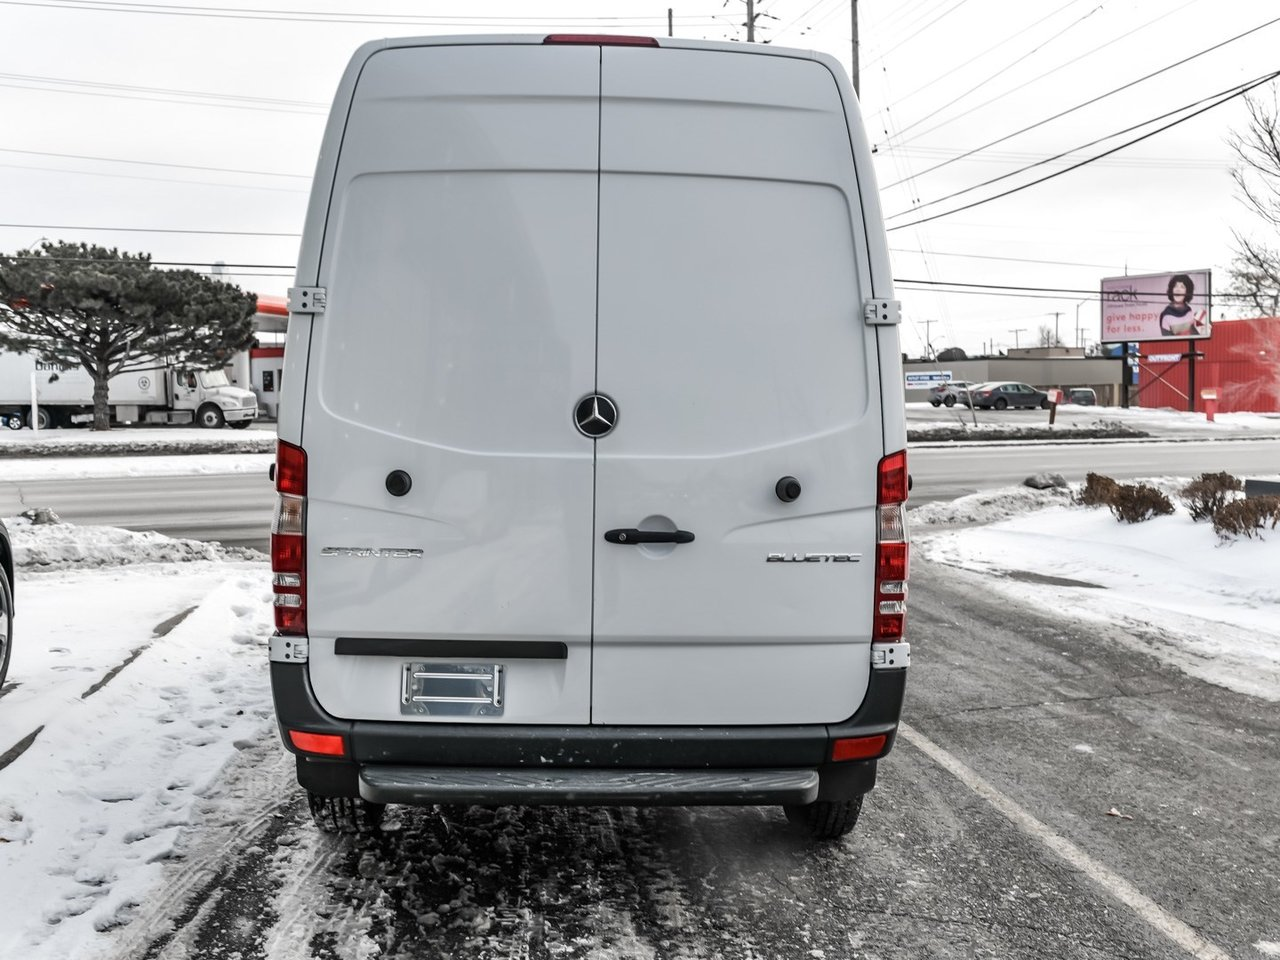 Certified Pre-Owned 2016 Mercedes-Benz Sprinter 2500 Cargo Sprinter 2500 Cargo 144